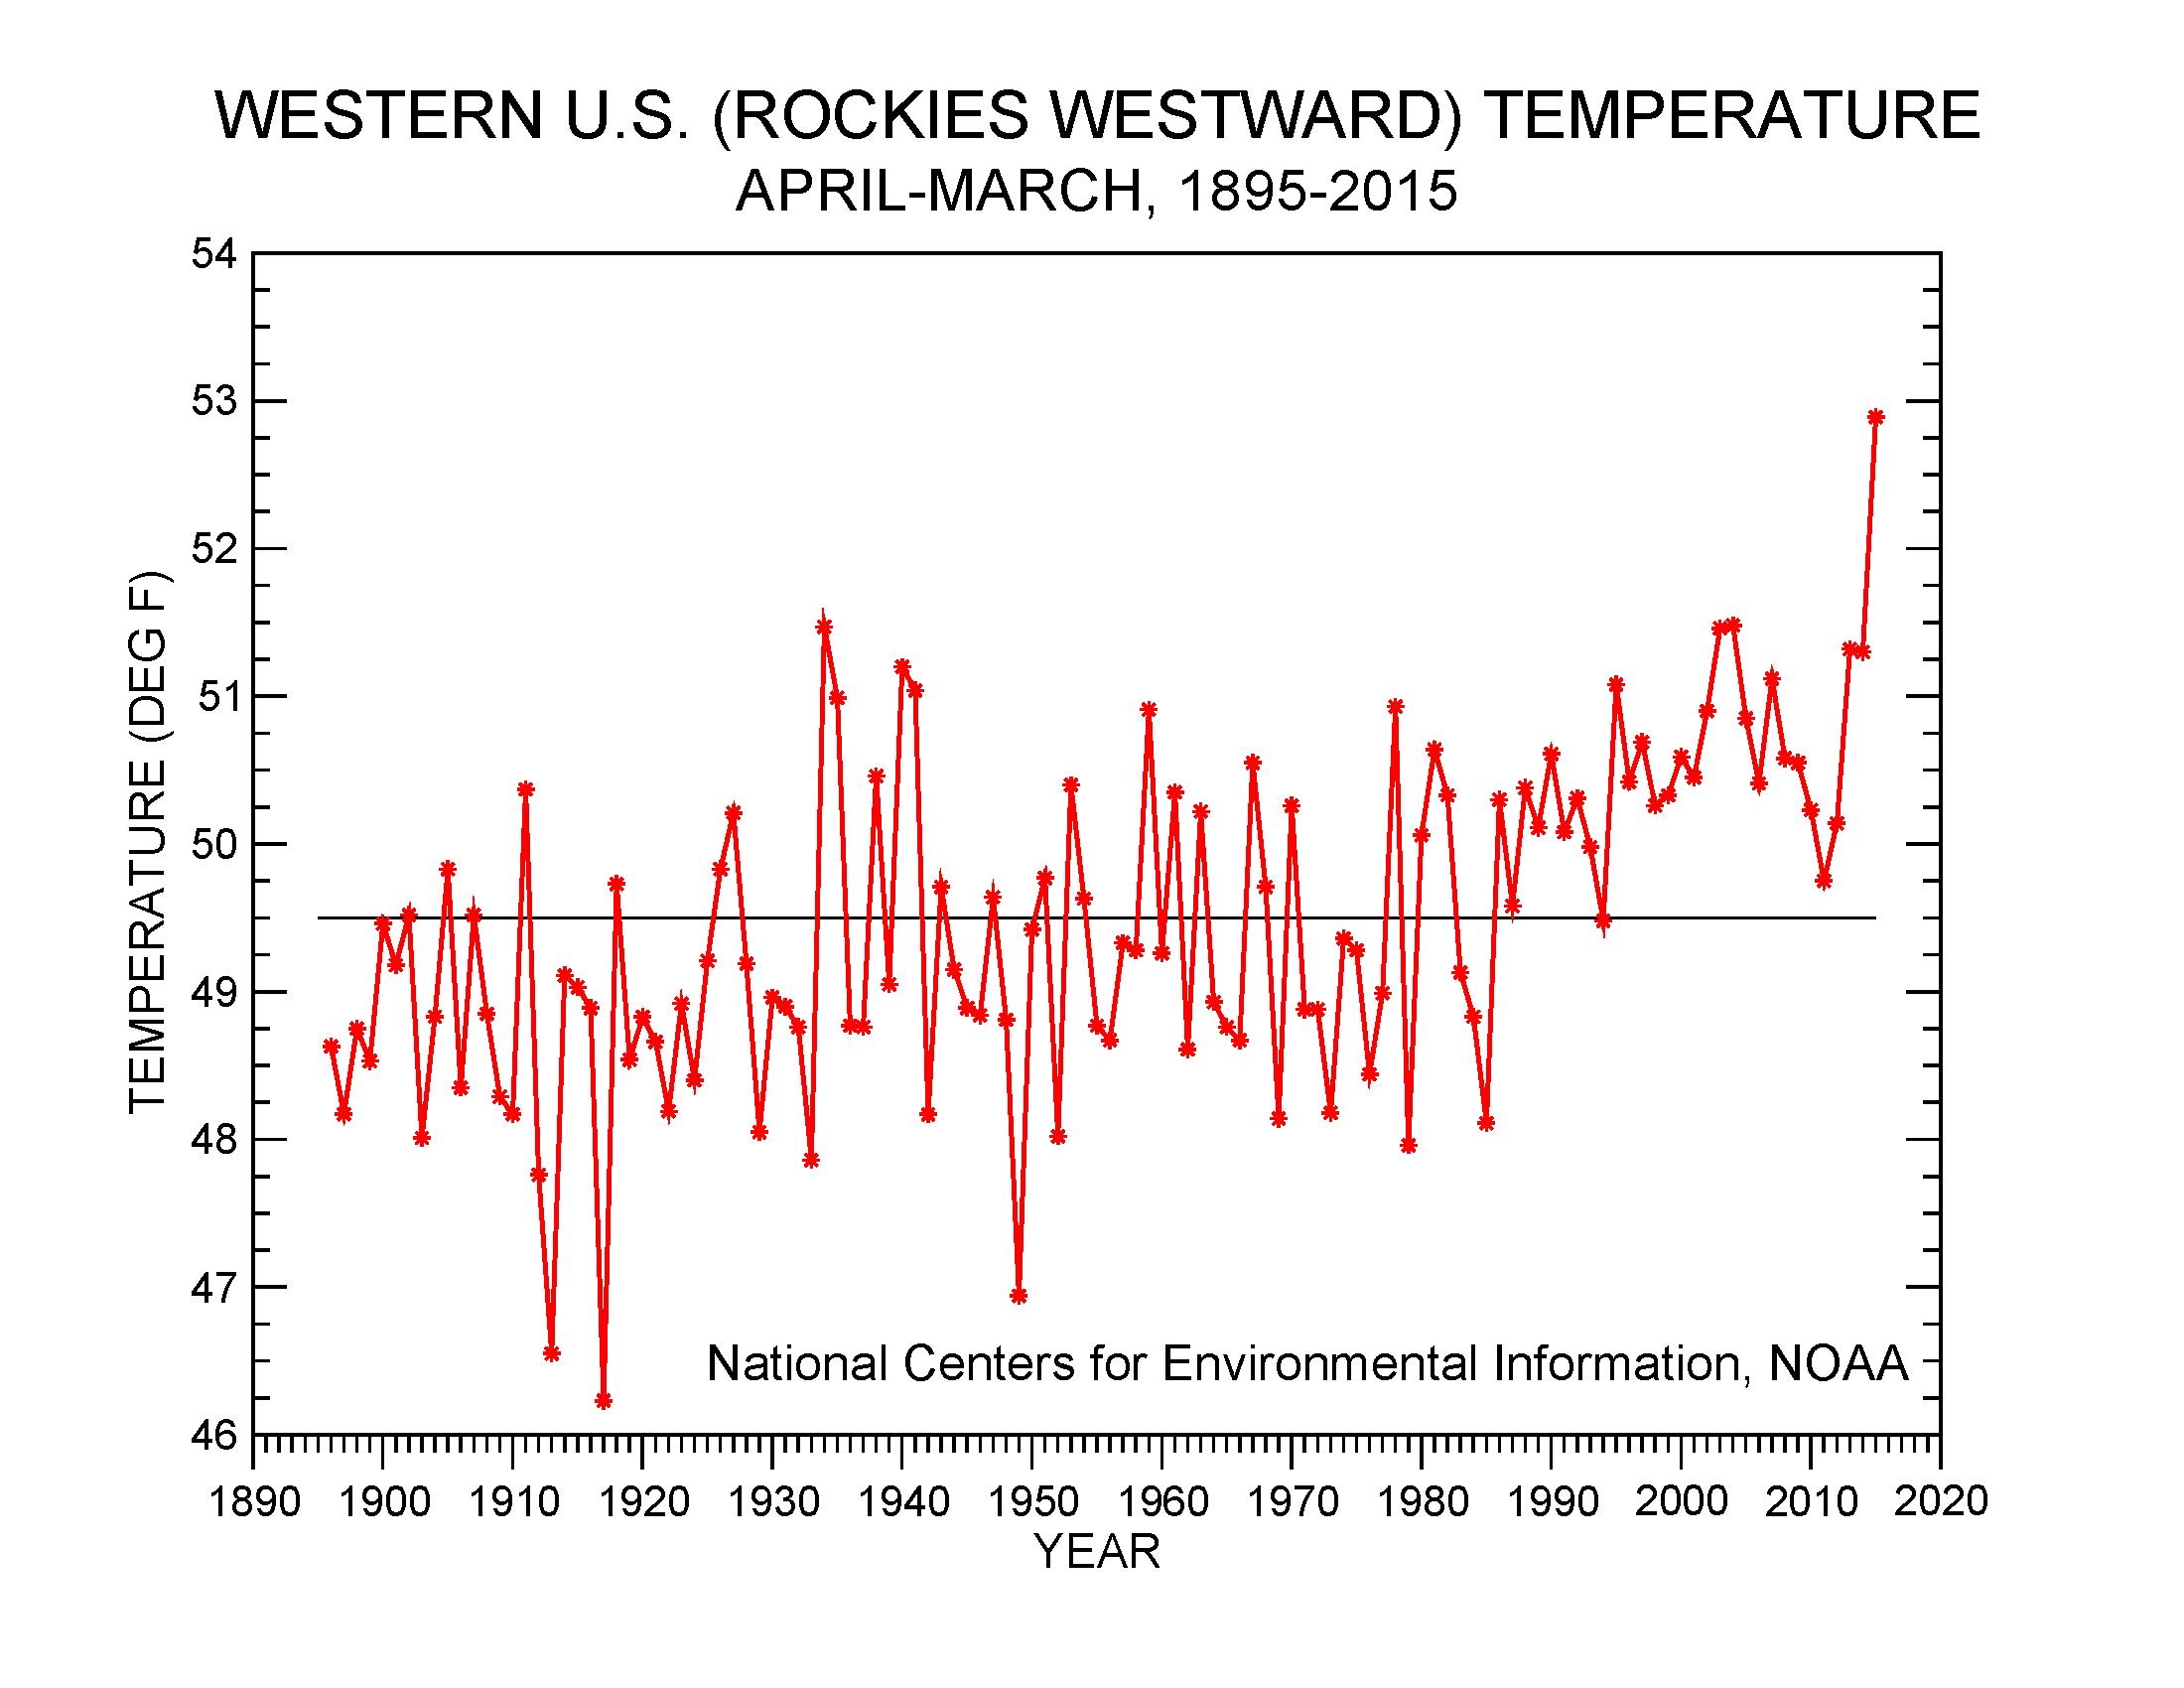 Western U.S. temperature, April-March, 1895-2015